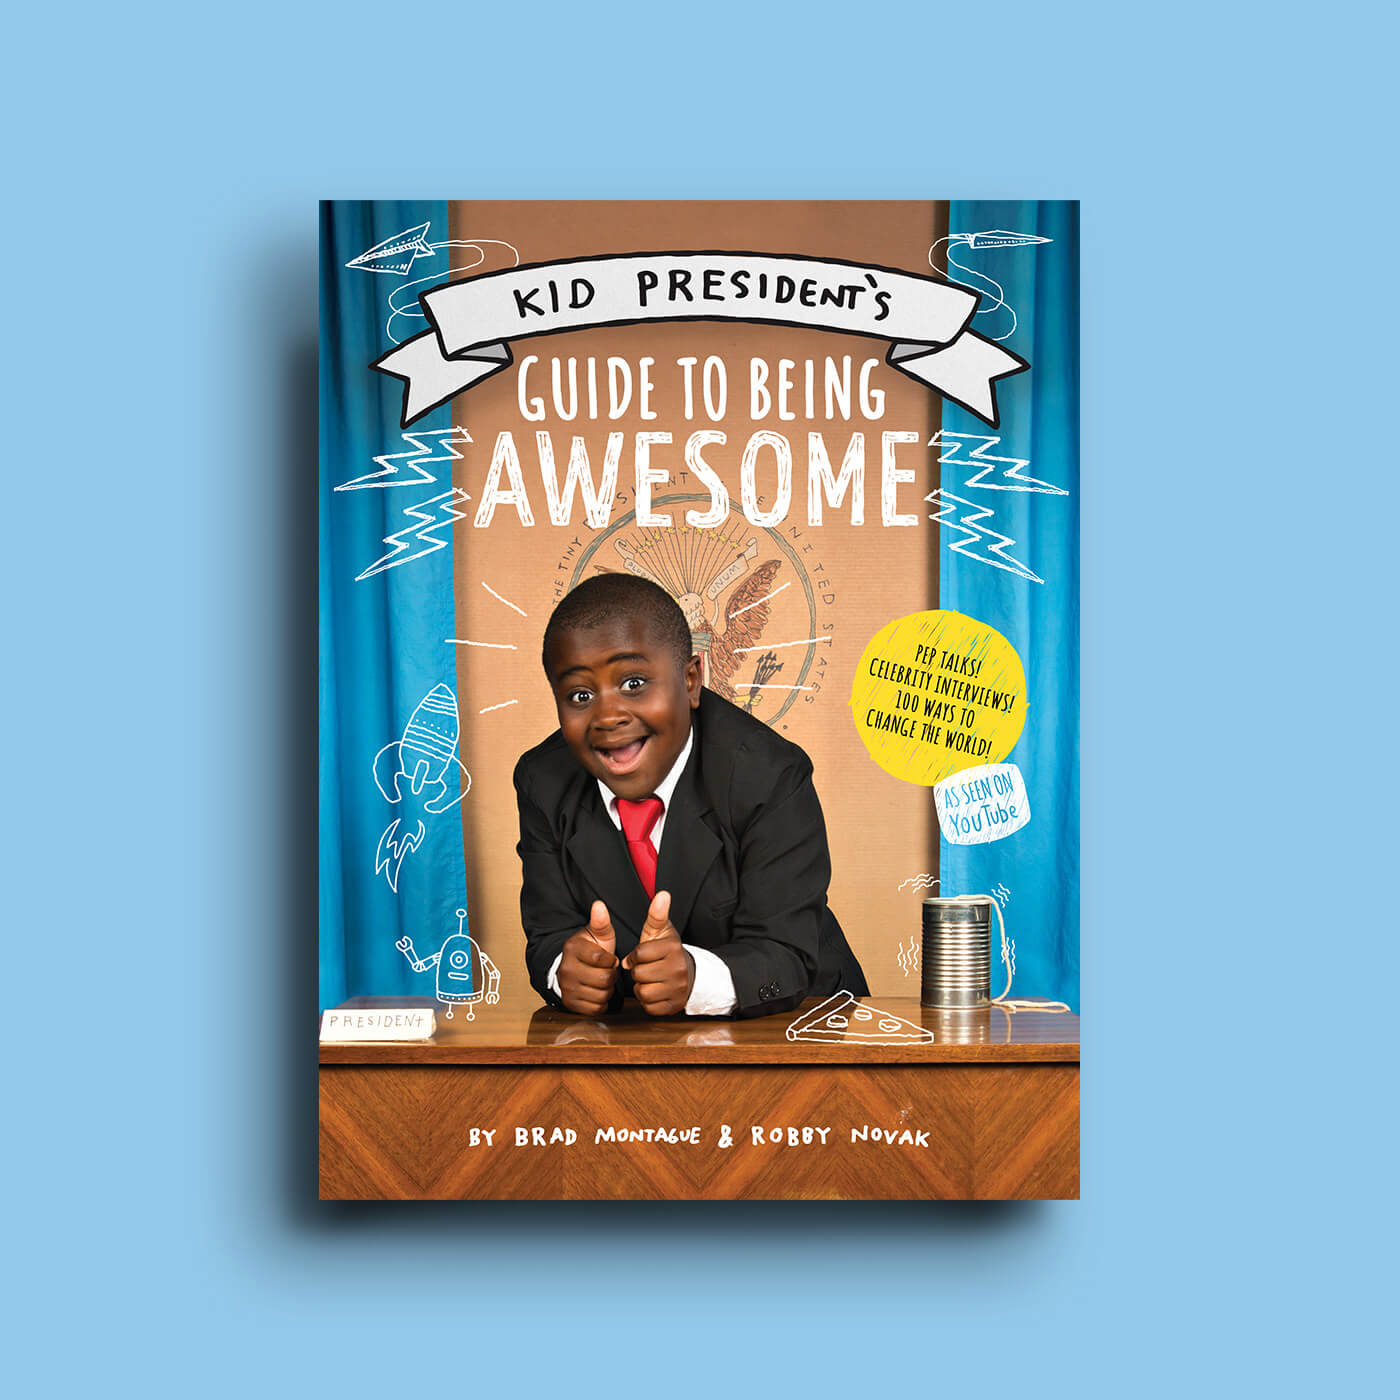 Kid President - The YouTube sensation brings his message of hope, and how kids can change the world, in this New York Times Best-Selling book.Design, IllustrationView Project →